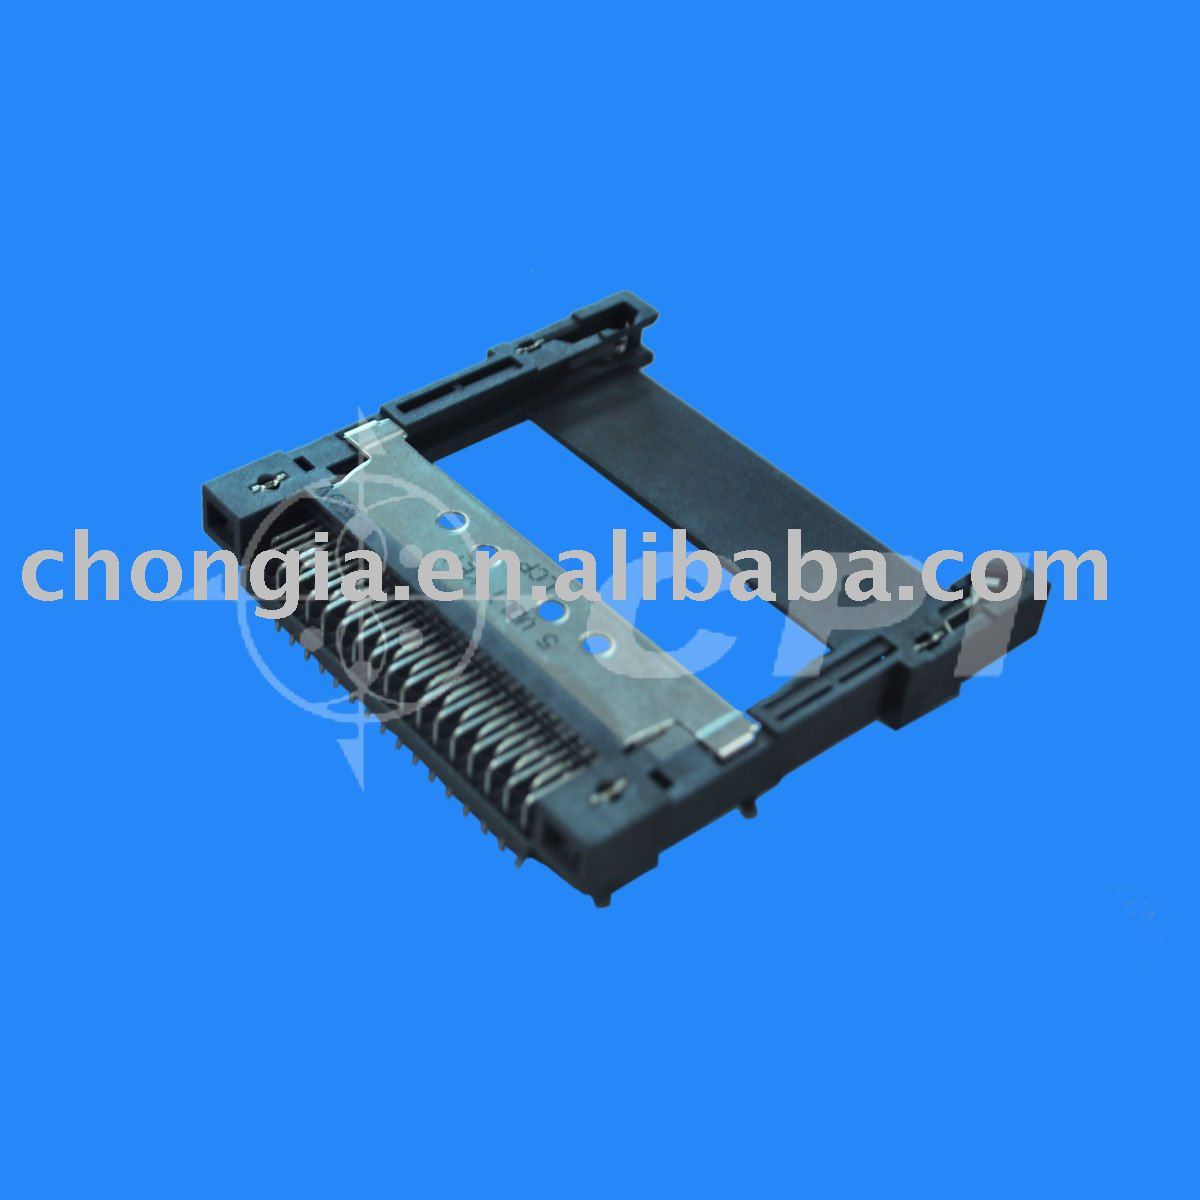 Male PCMCIA without ejector socket, View PCMCIA Connector, CPI Product